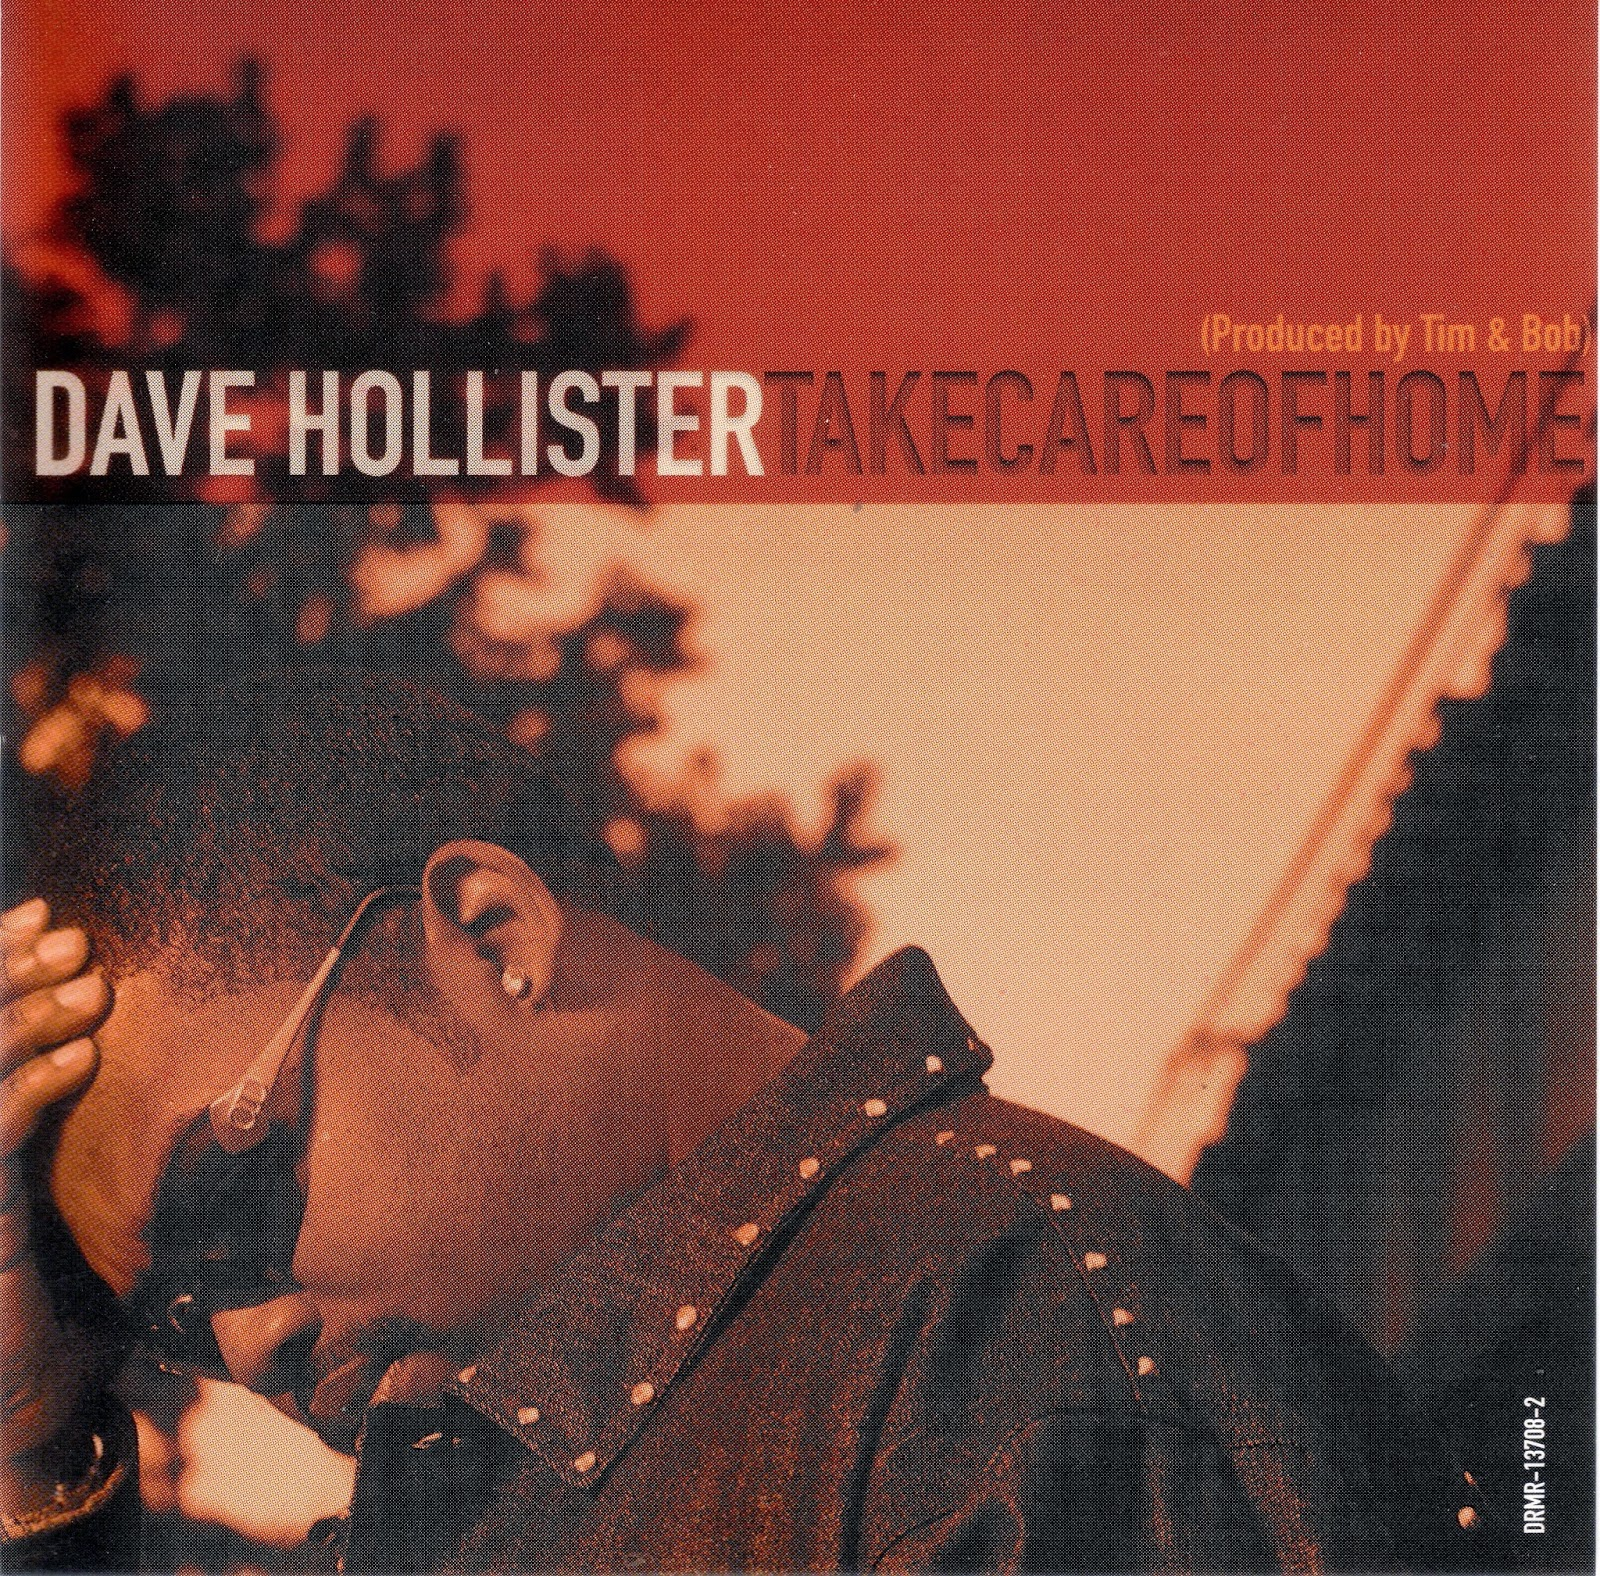 Dave Hollister - Take Care Of Home (Promo CDS) (2000)